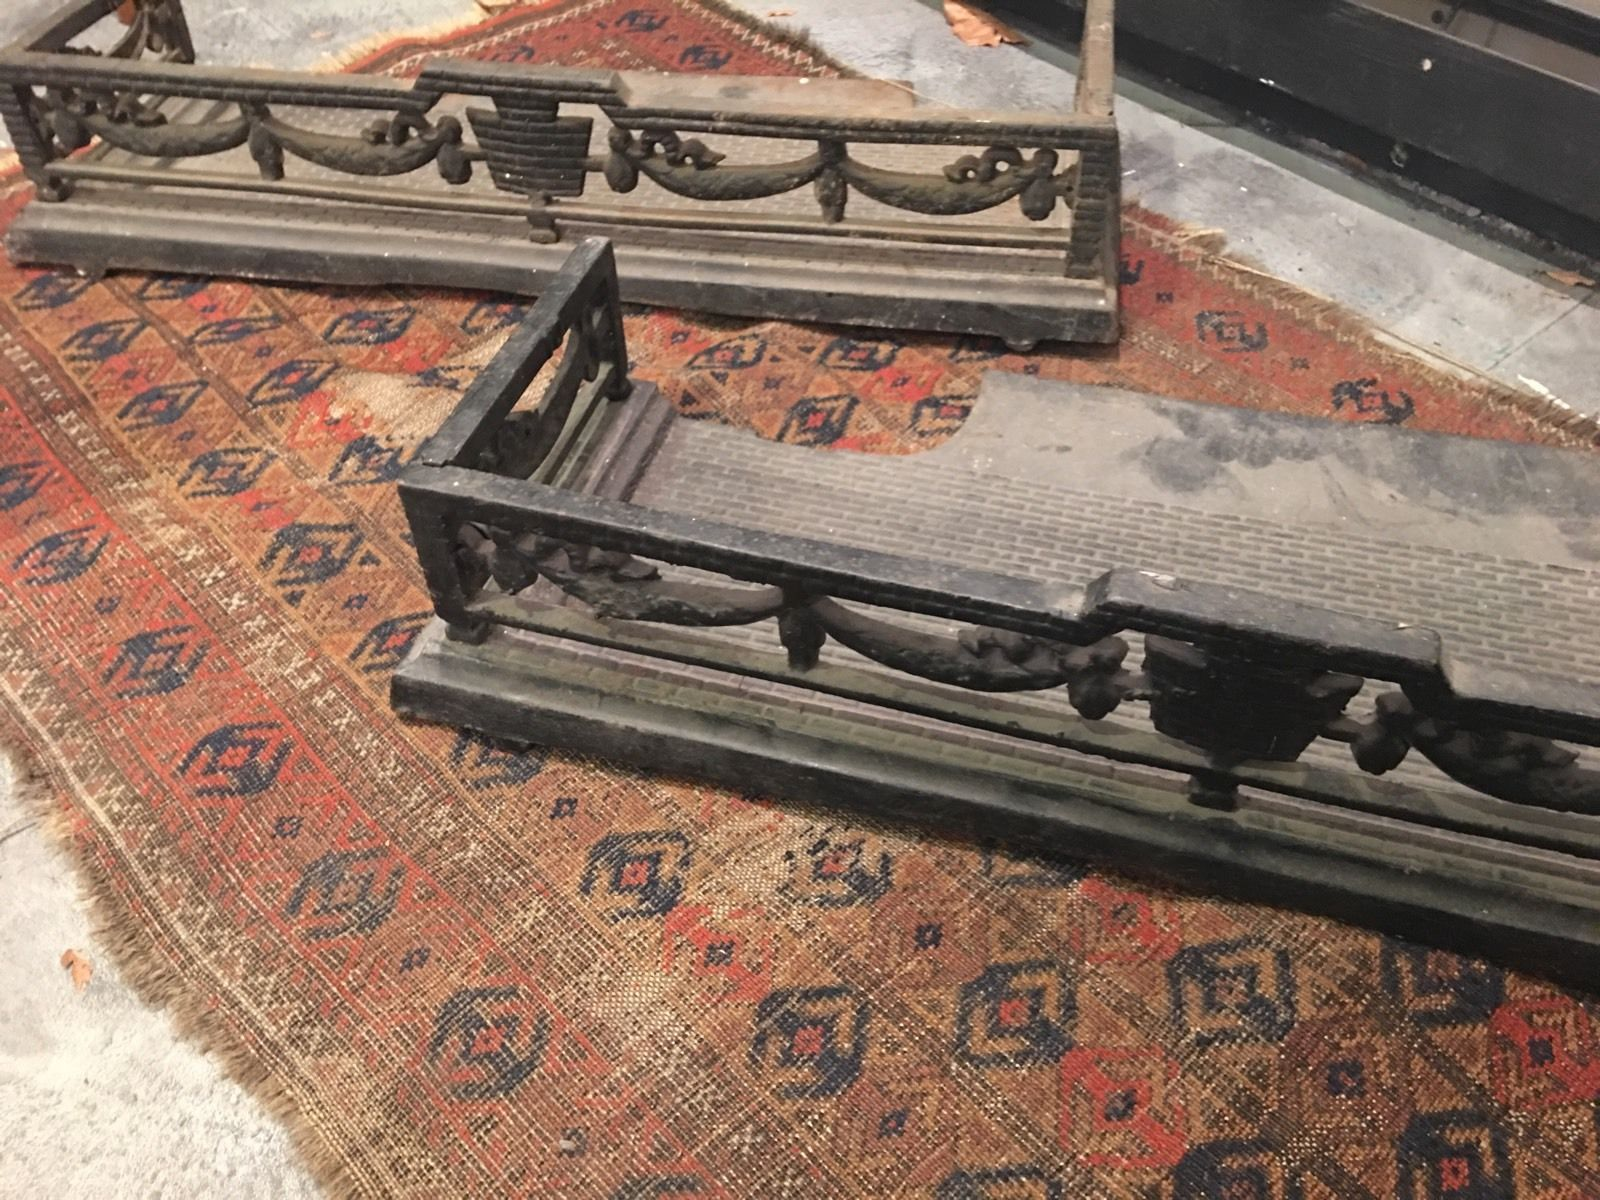 antique victorian fireplace fireplace grate fenders inserts metal